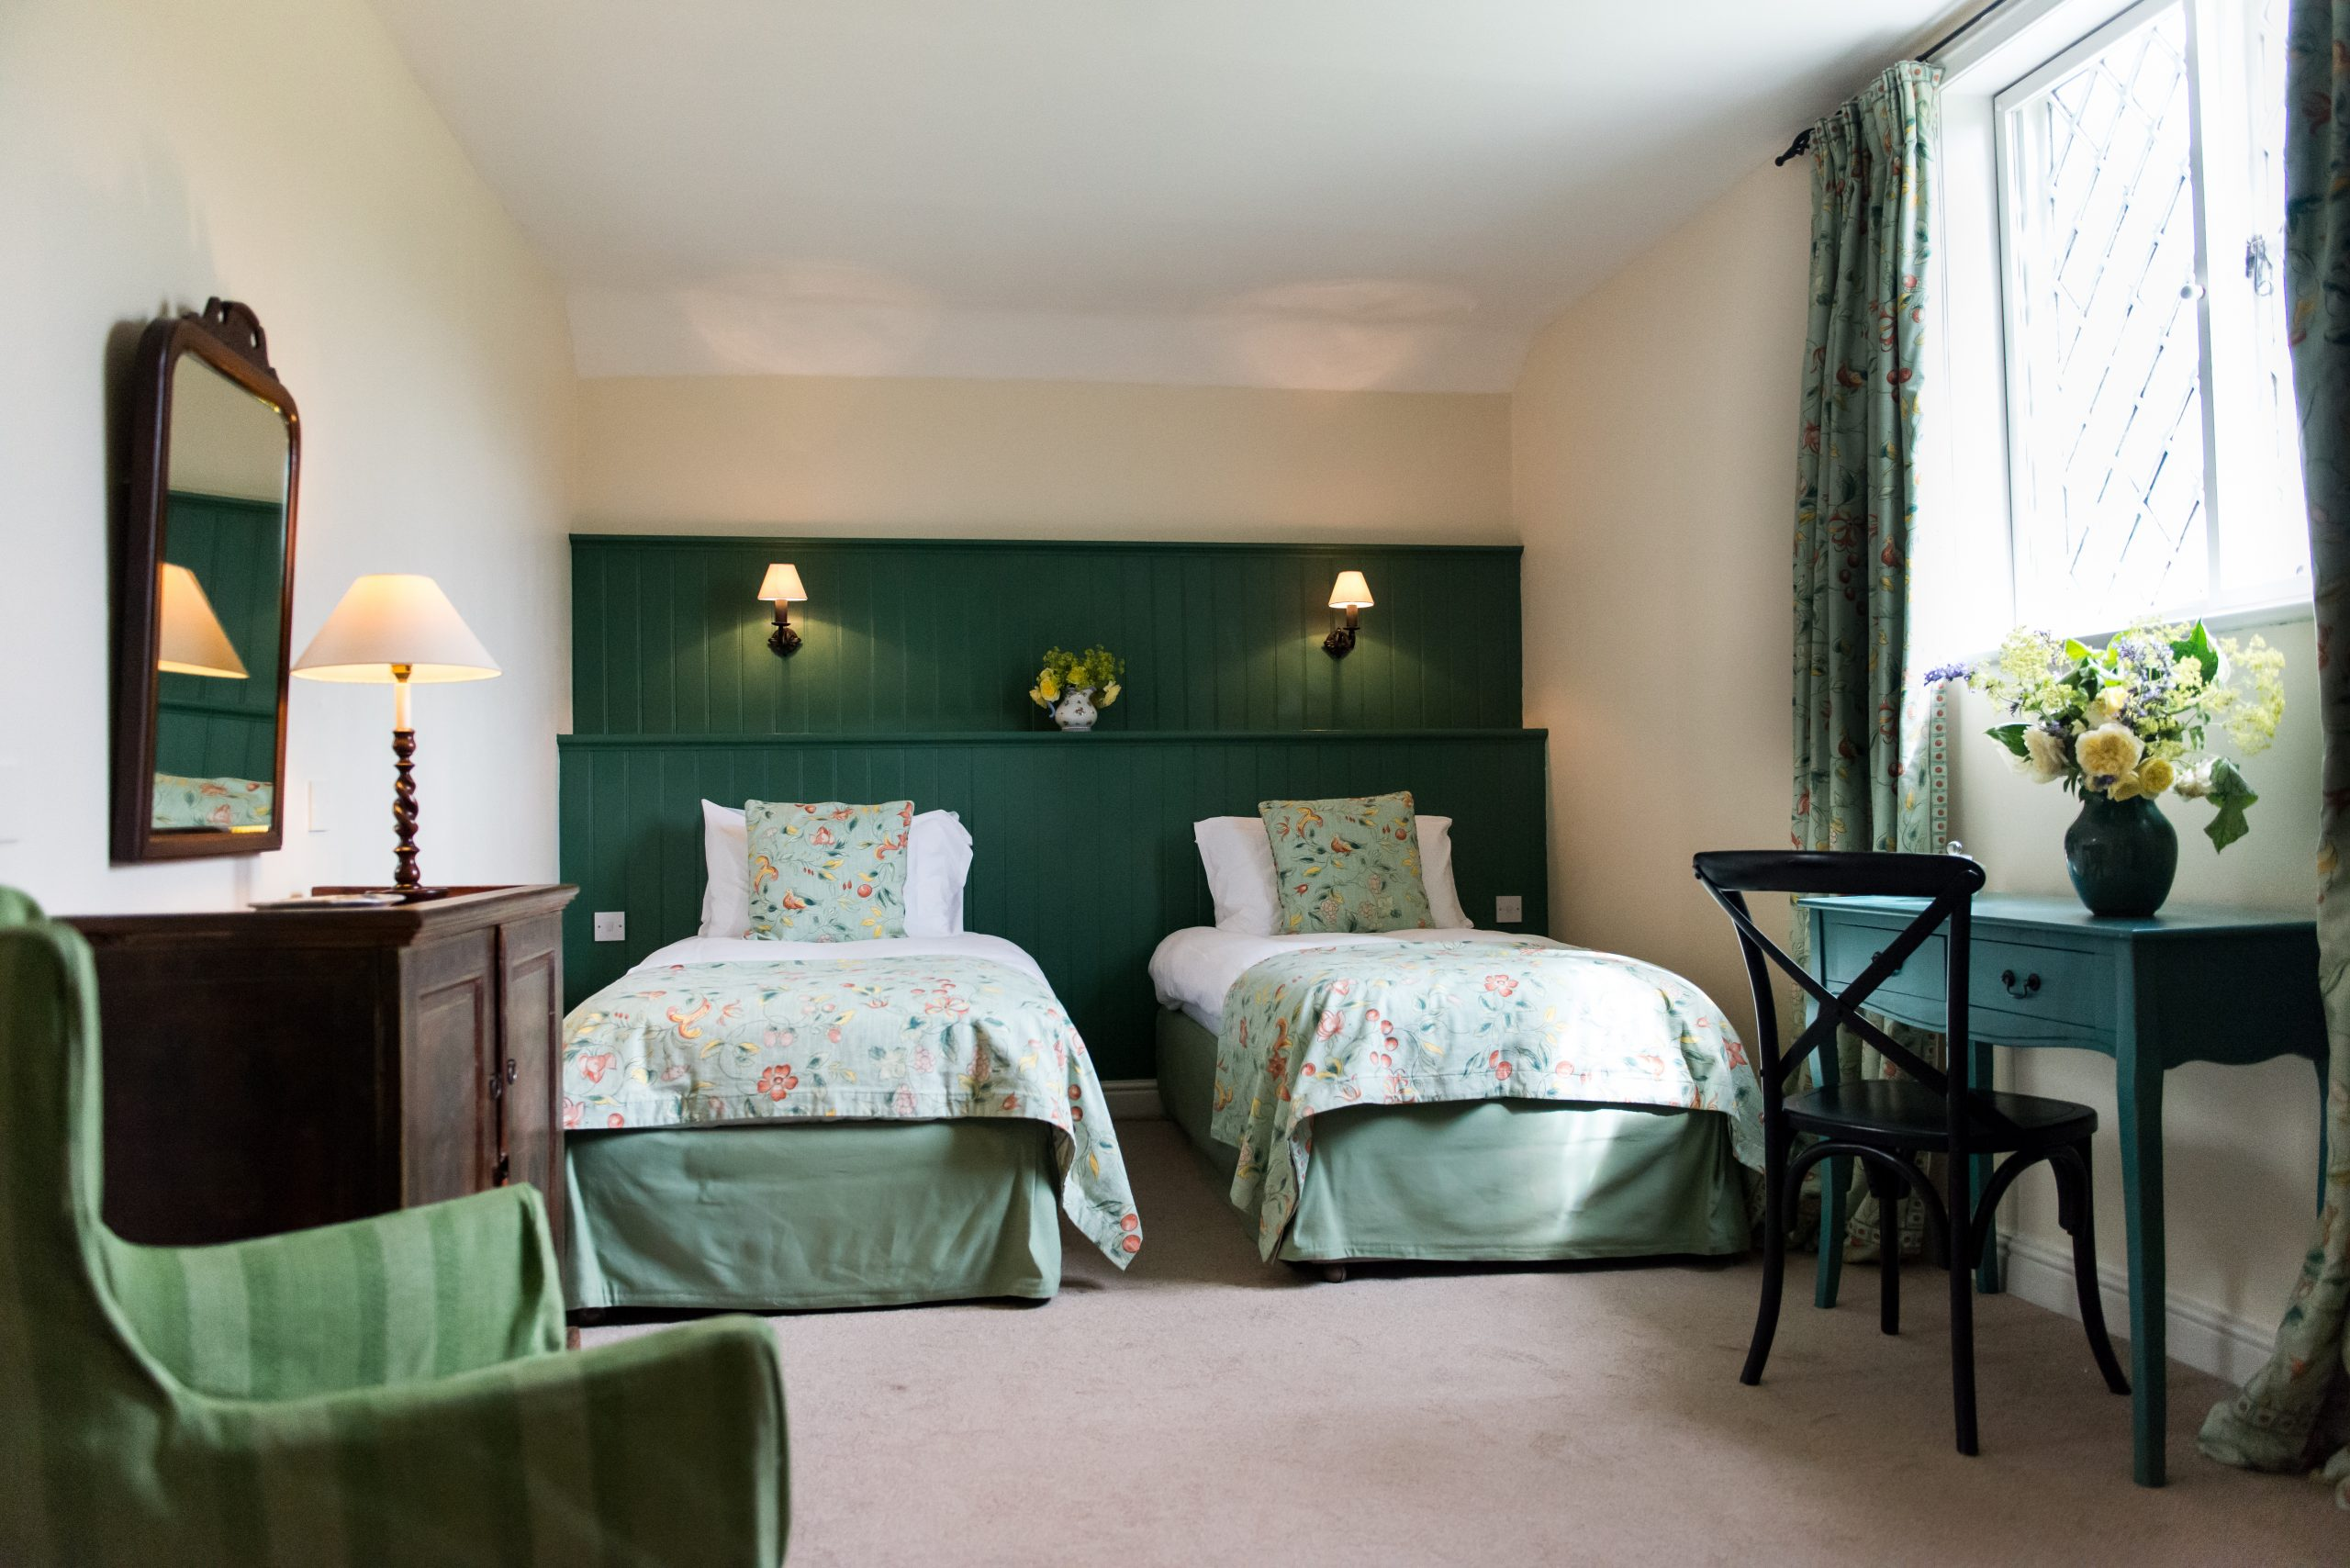 Self-catering holiday cottages in Cheshire, UK